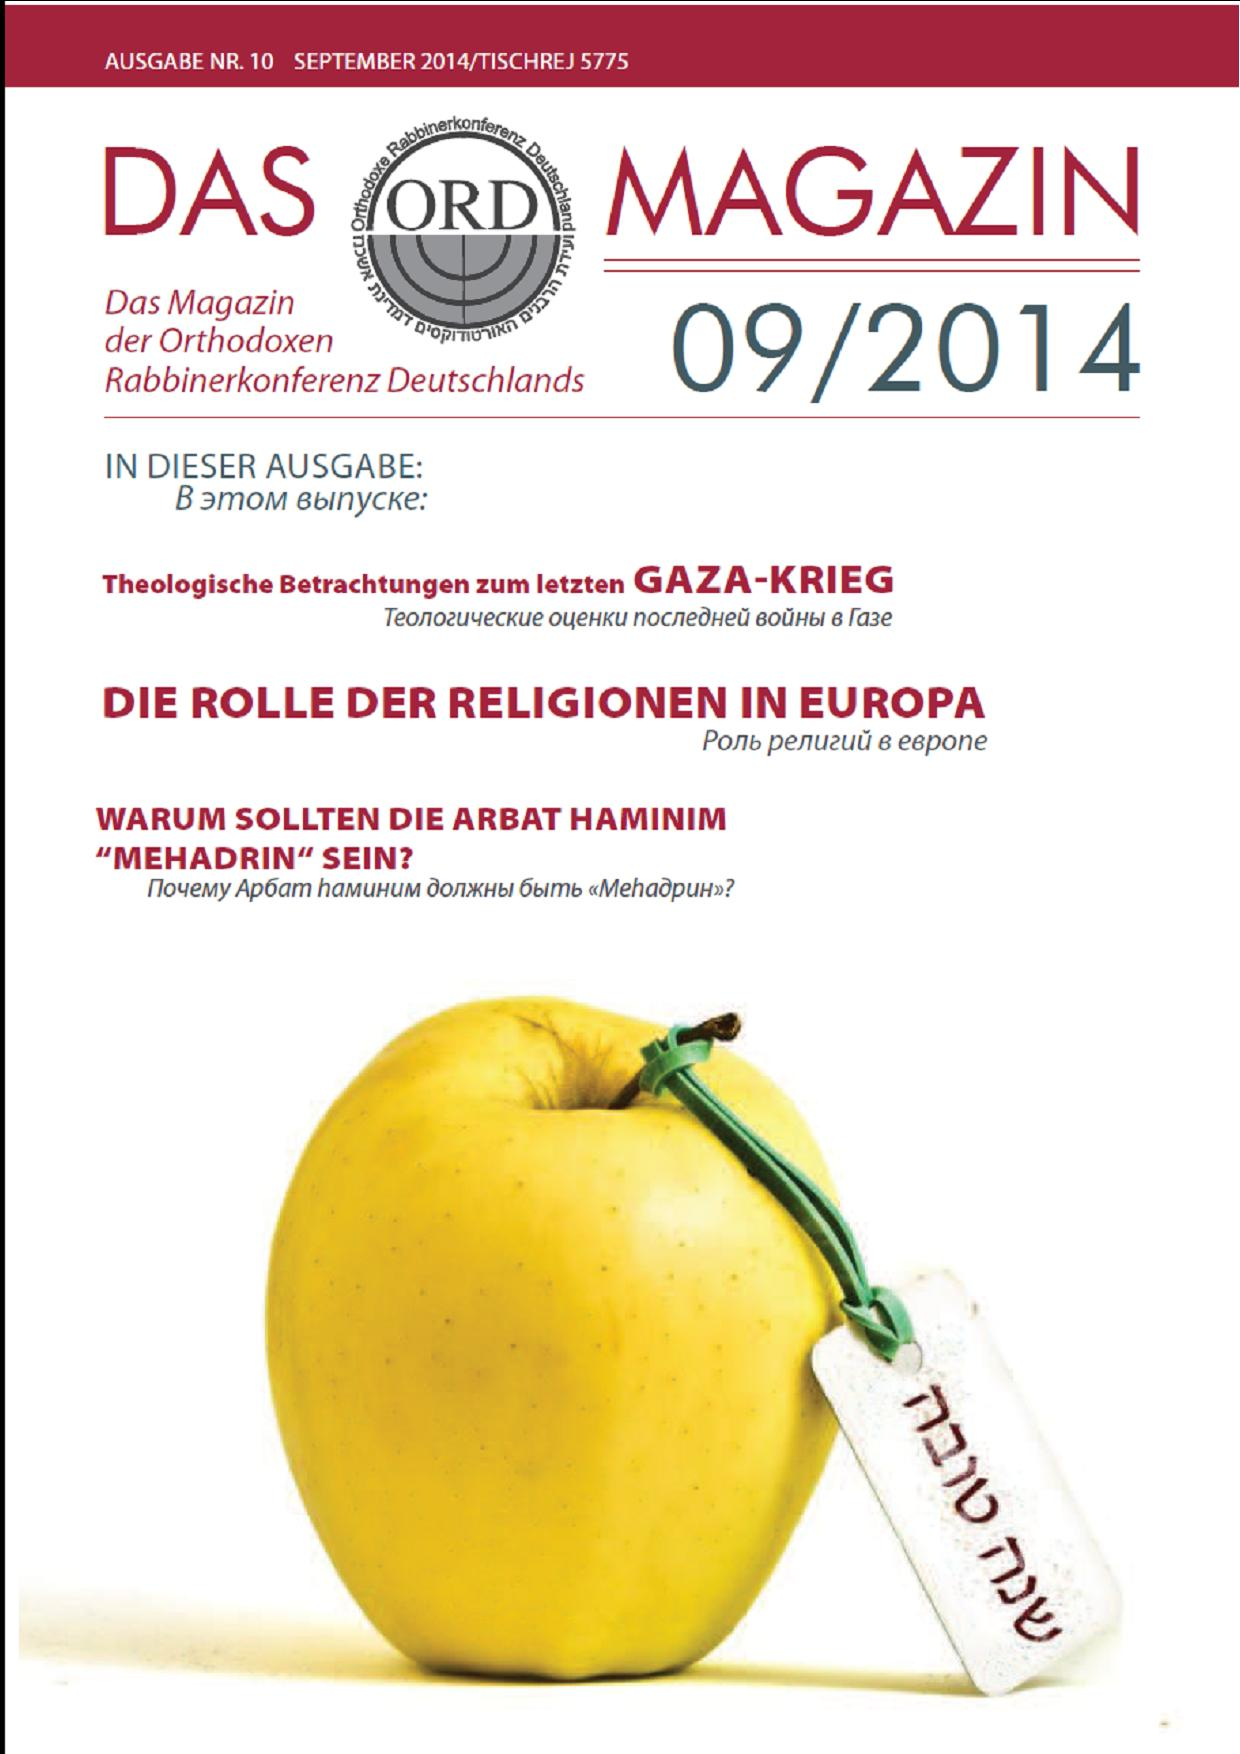 ORD Magazin 09/2014 Cover